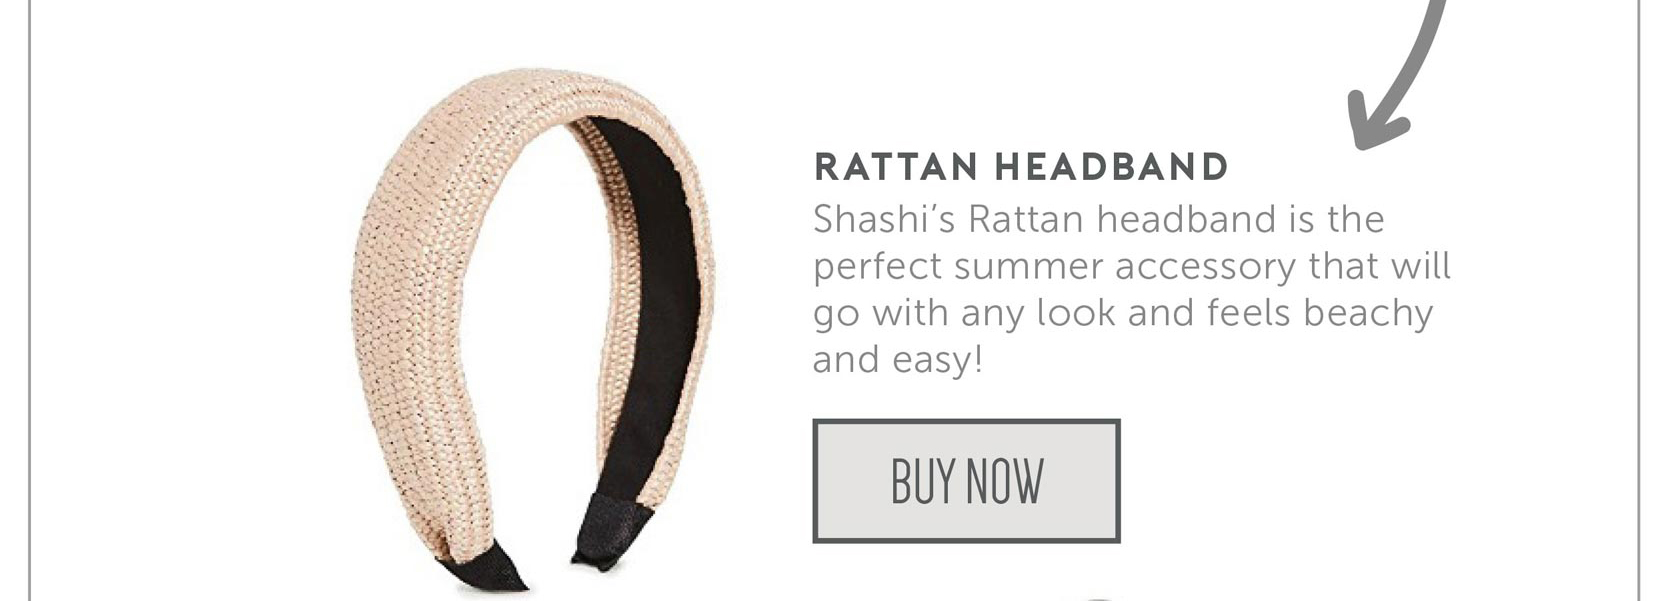 Shashi's Rattan headband is the perfect summer accessory that will go with any look and feels beachy and easy!